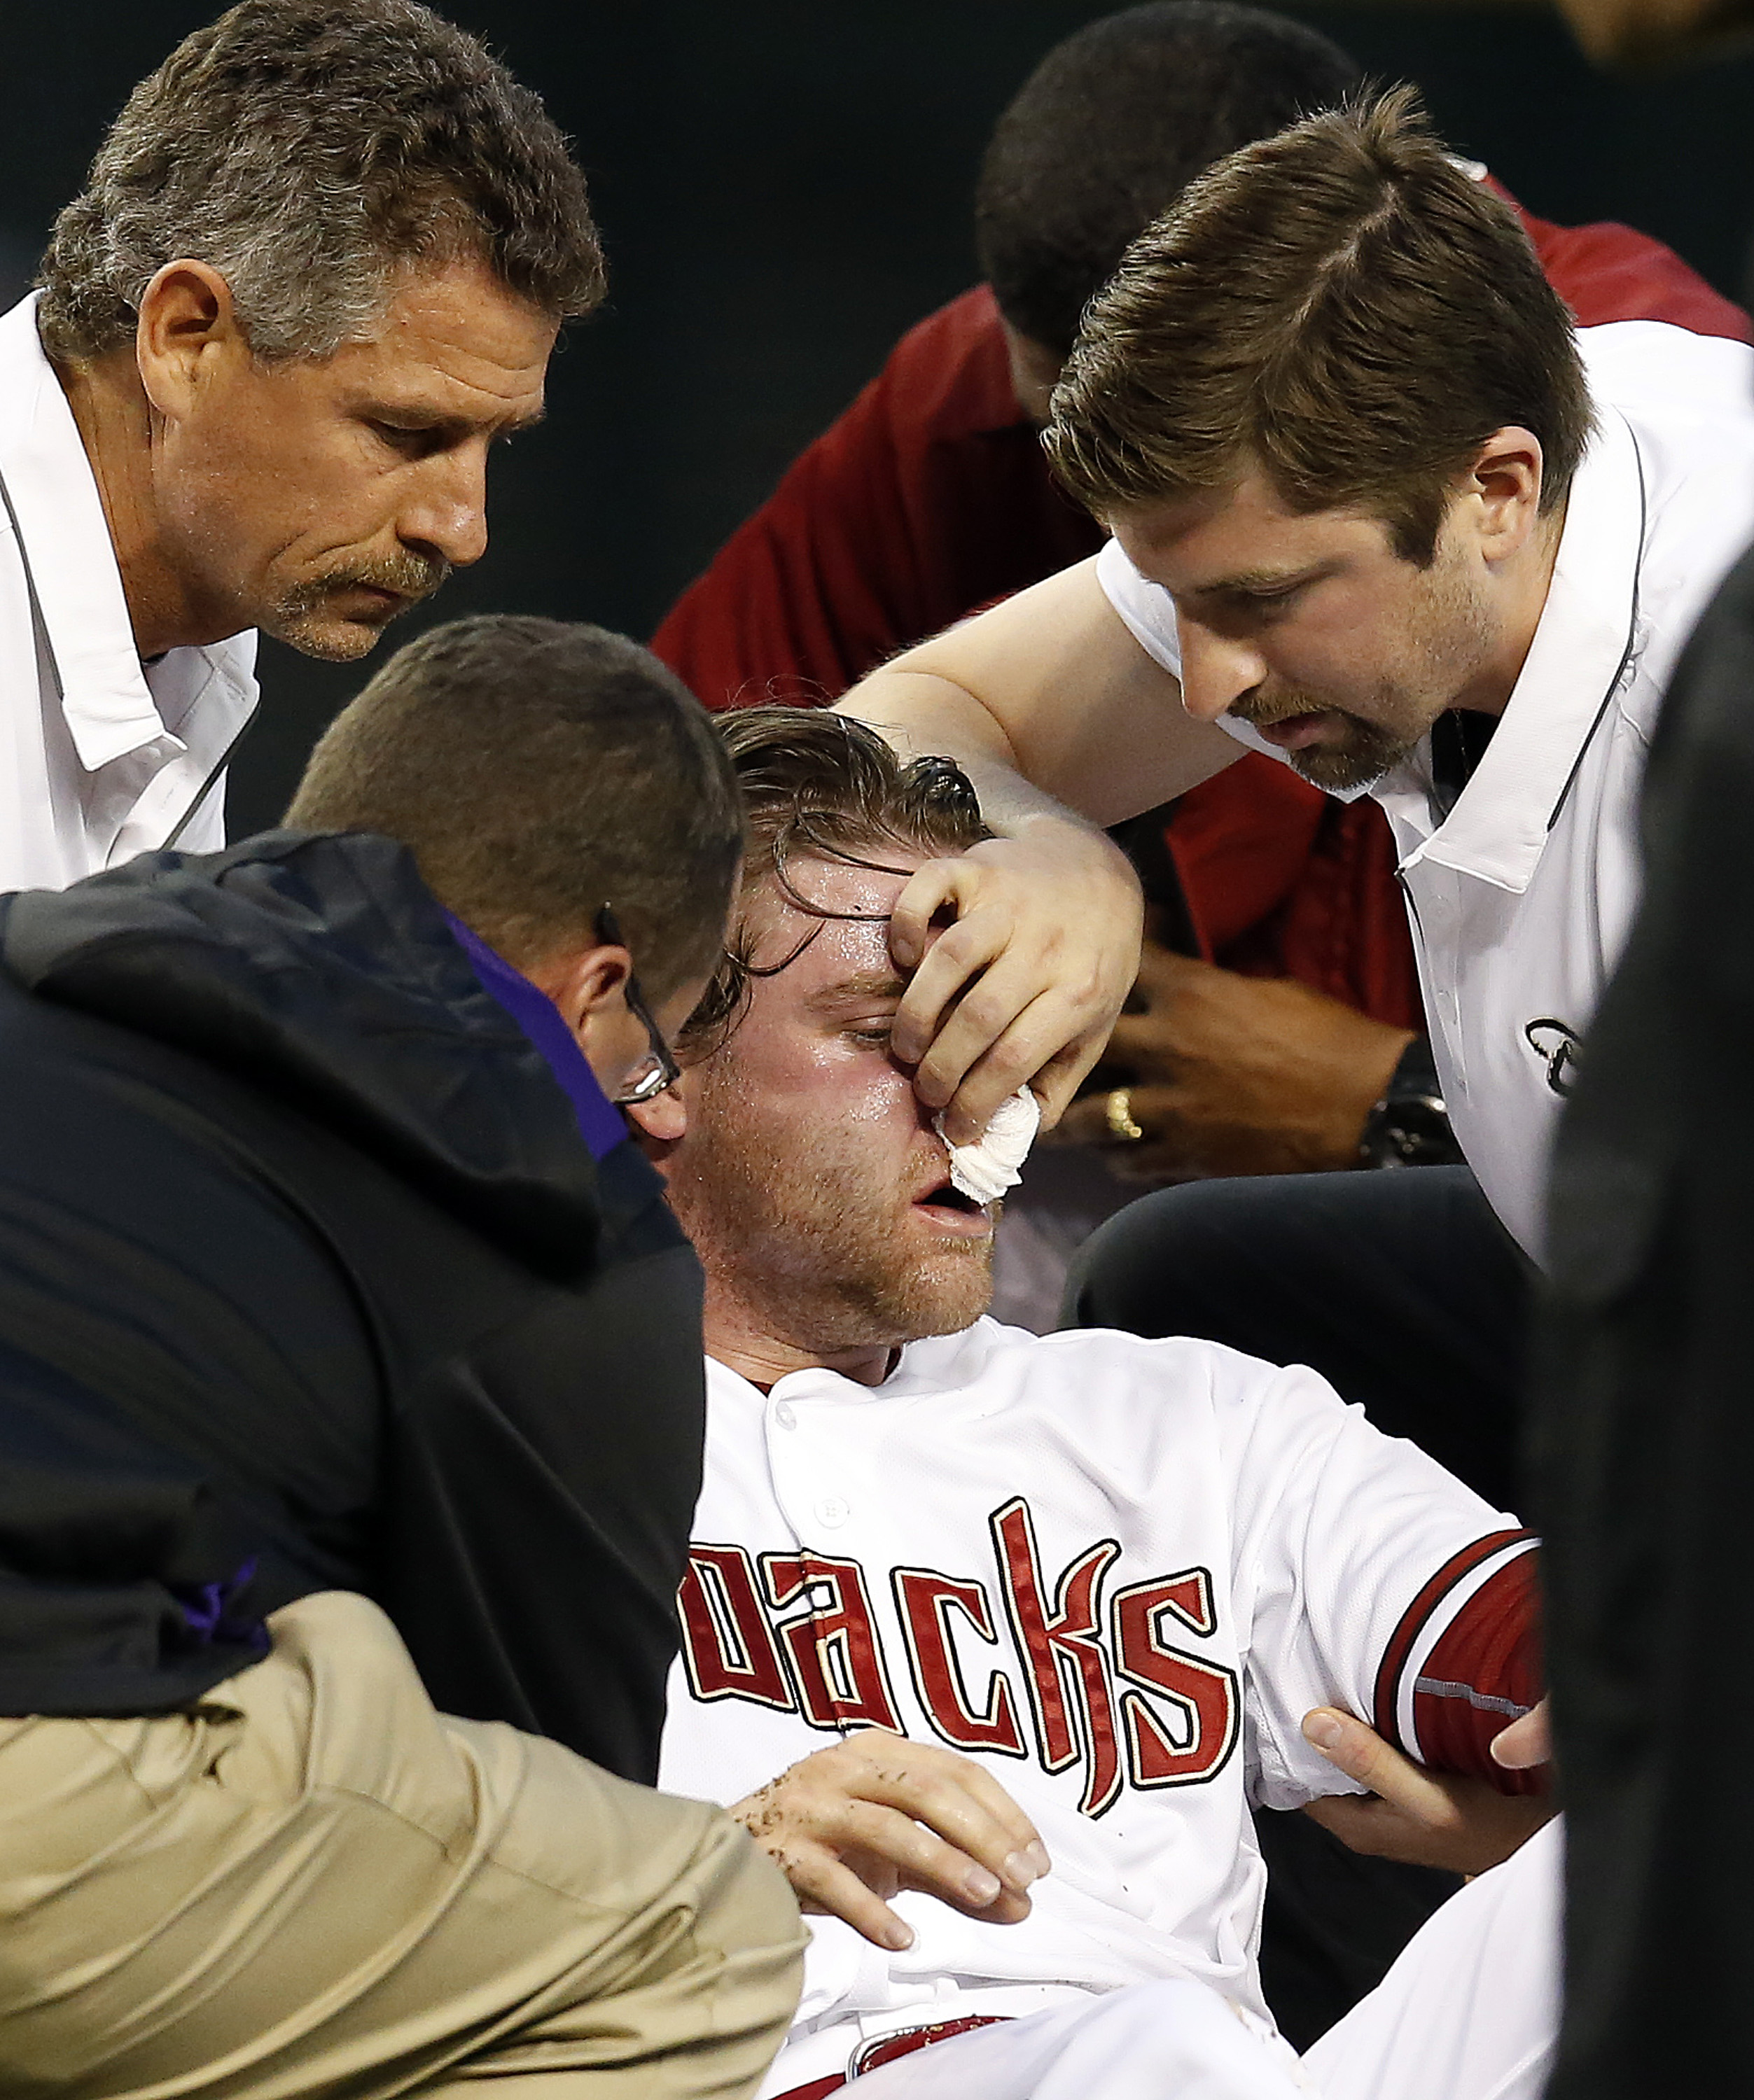 Trainers attend to Arizona Diamondbacks pitcher Archie Bradley (25) in the second inning after getting hit with a line drive during a baseball game against the Colorado Rockies, Tuesday, April 28, 2015, in Phoenix. (AP Photo/Rick Scuteri)